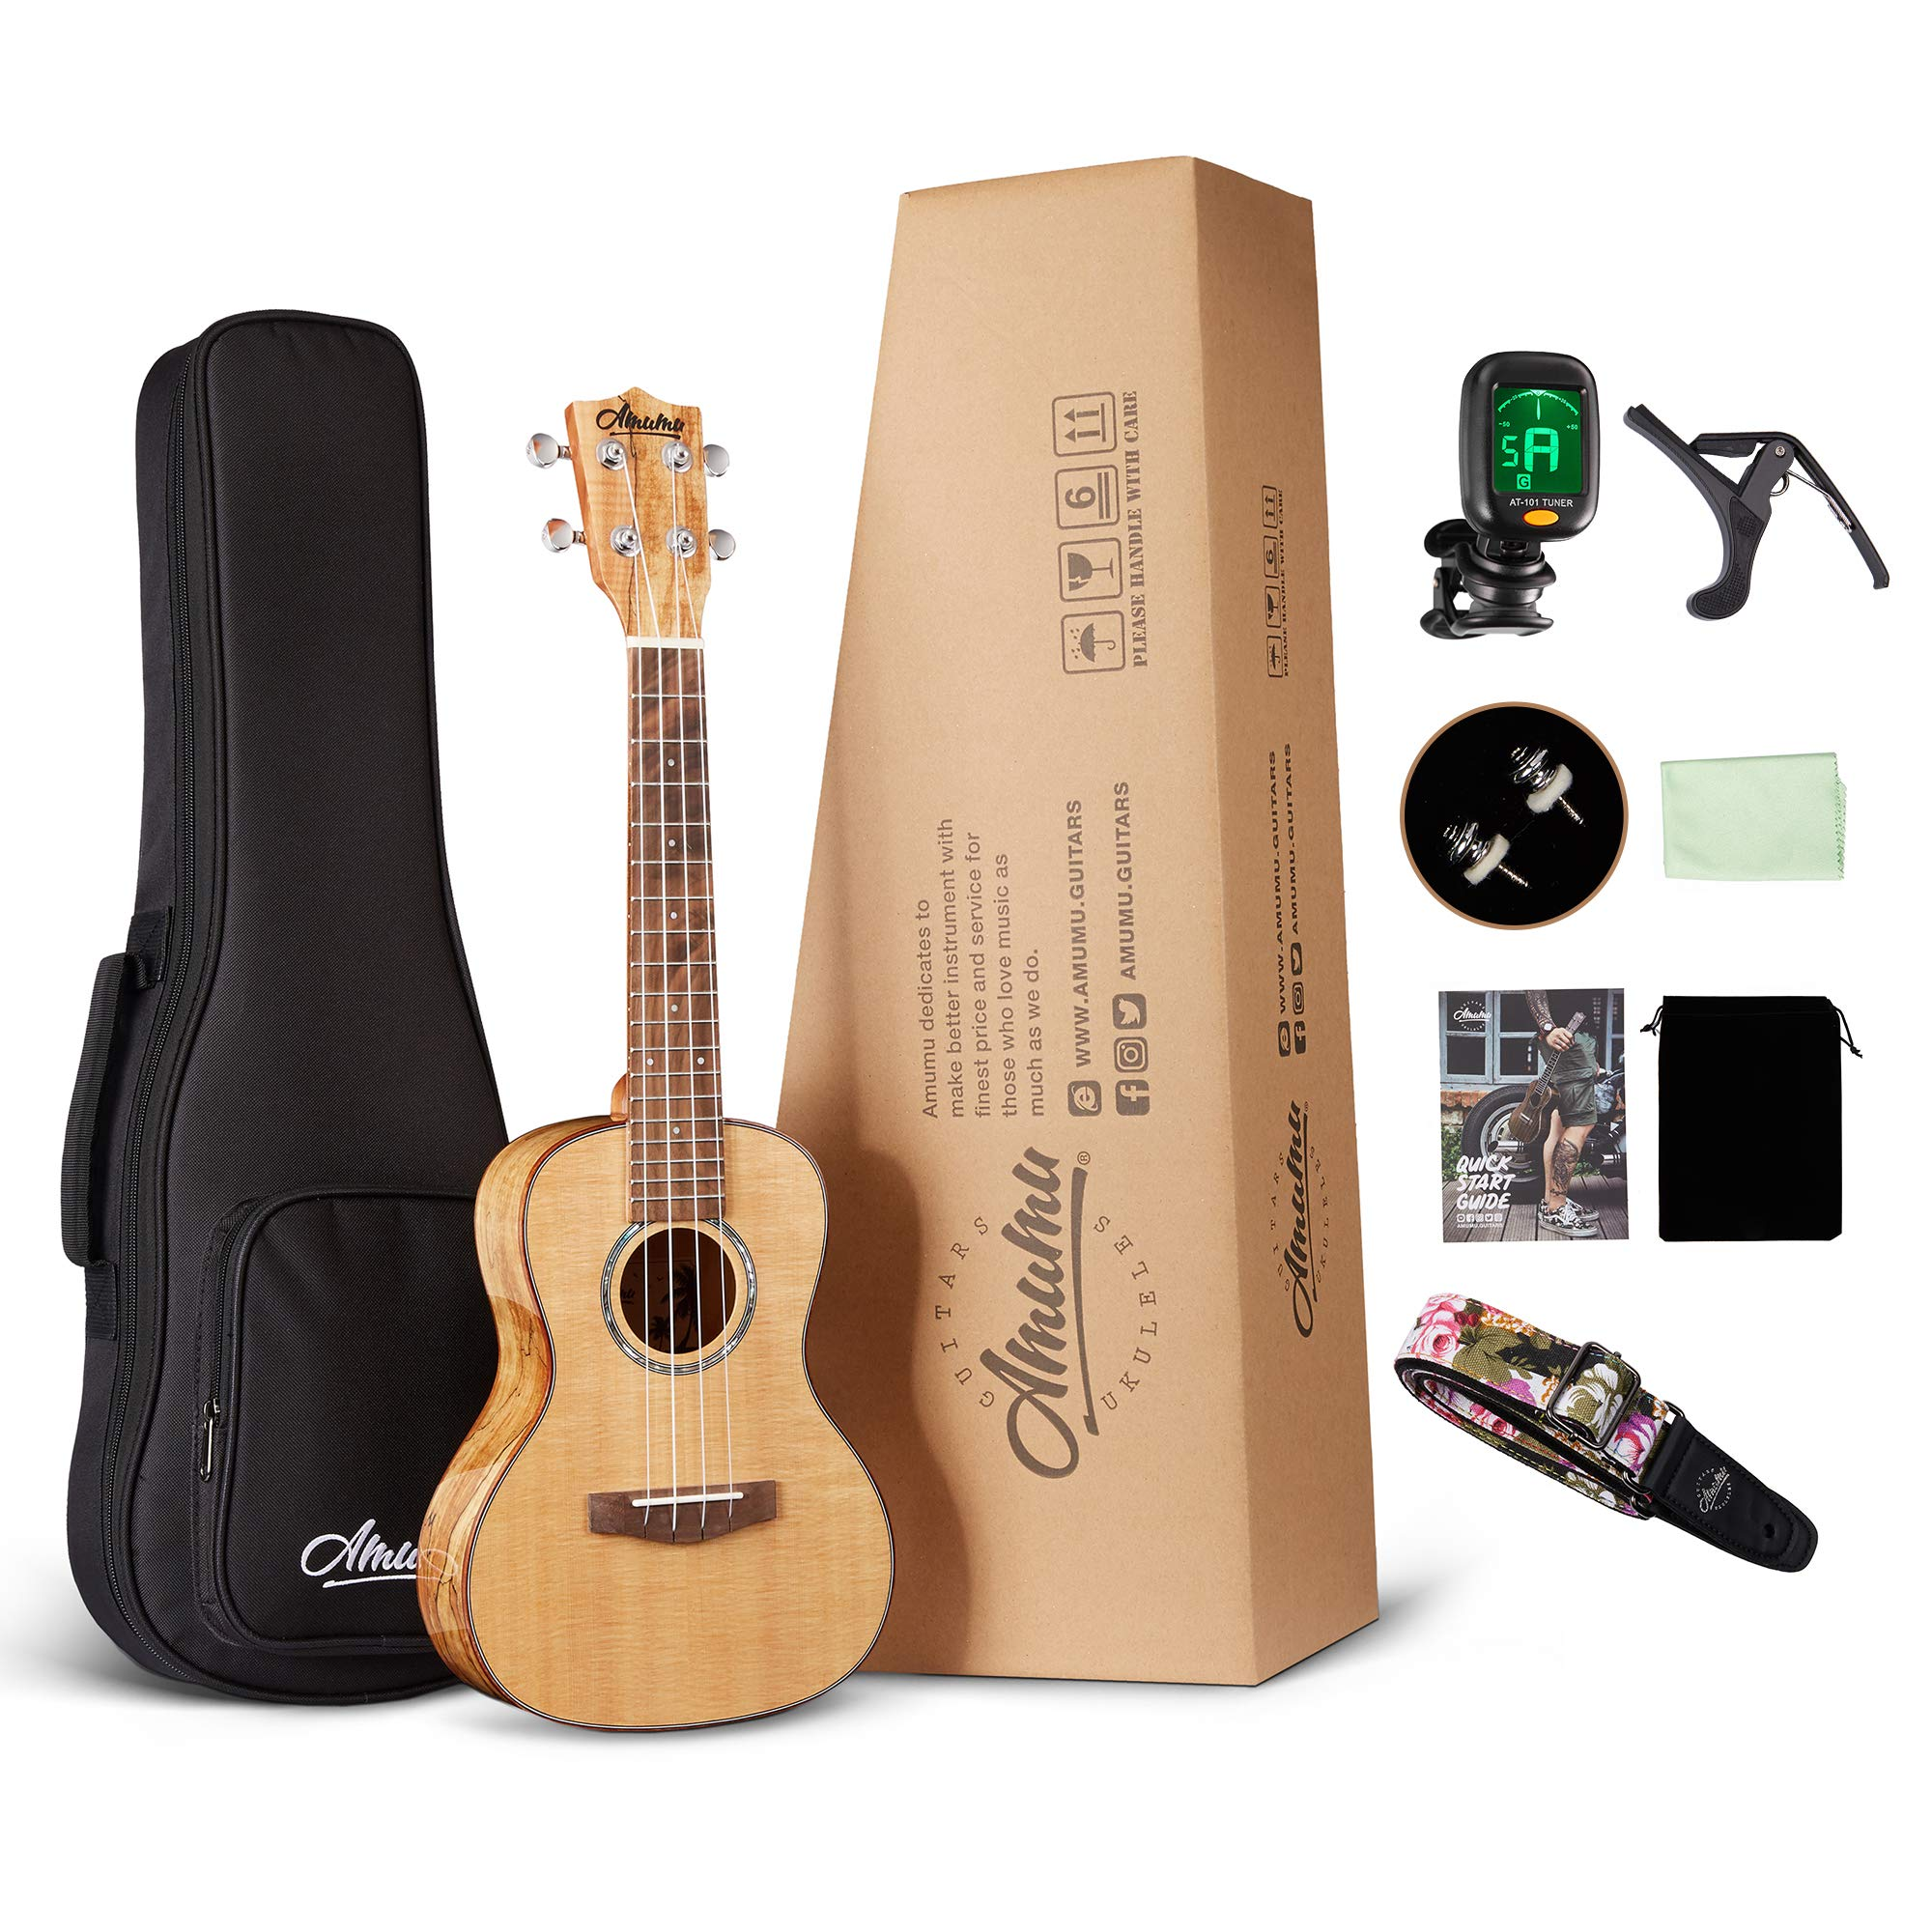 Amumu AM-SPFM-C Solid Spruce Top Spalted Maple Gloss Concert Ukulele w/Gig Bag and Clip On Tuner Ukulele Strap